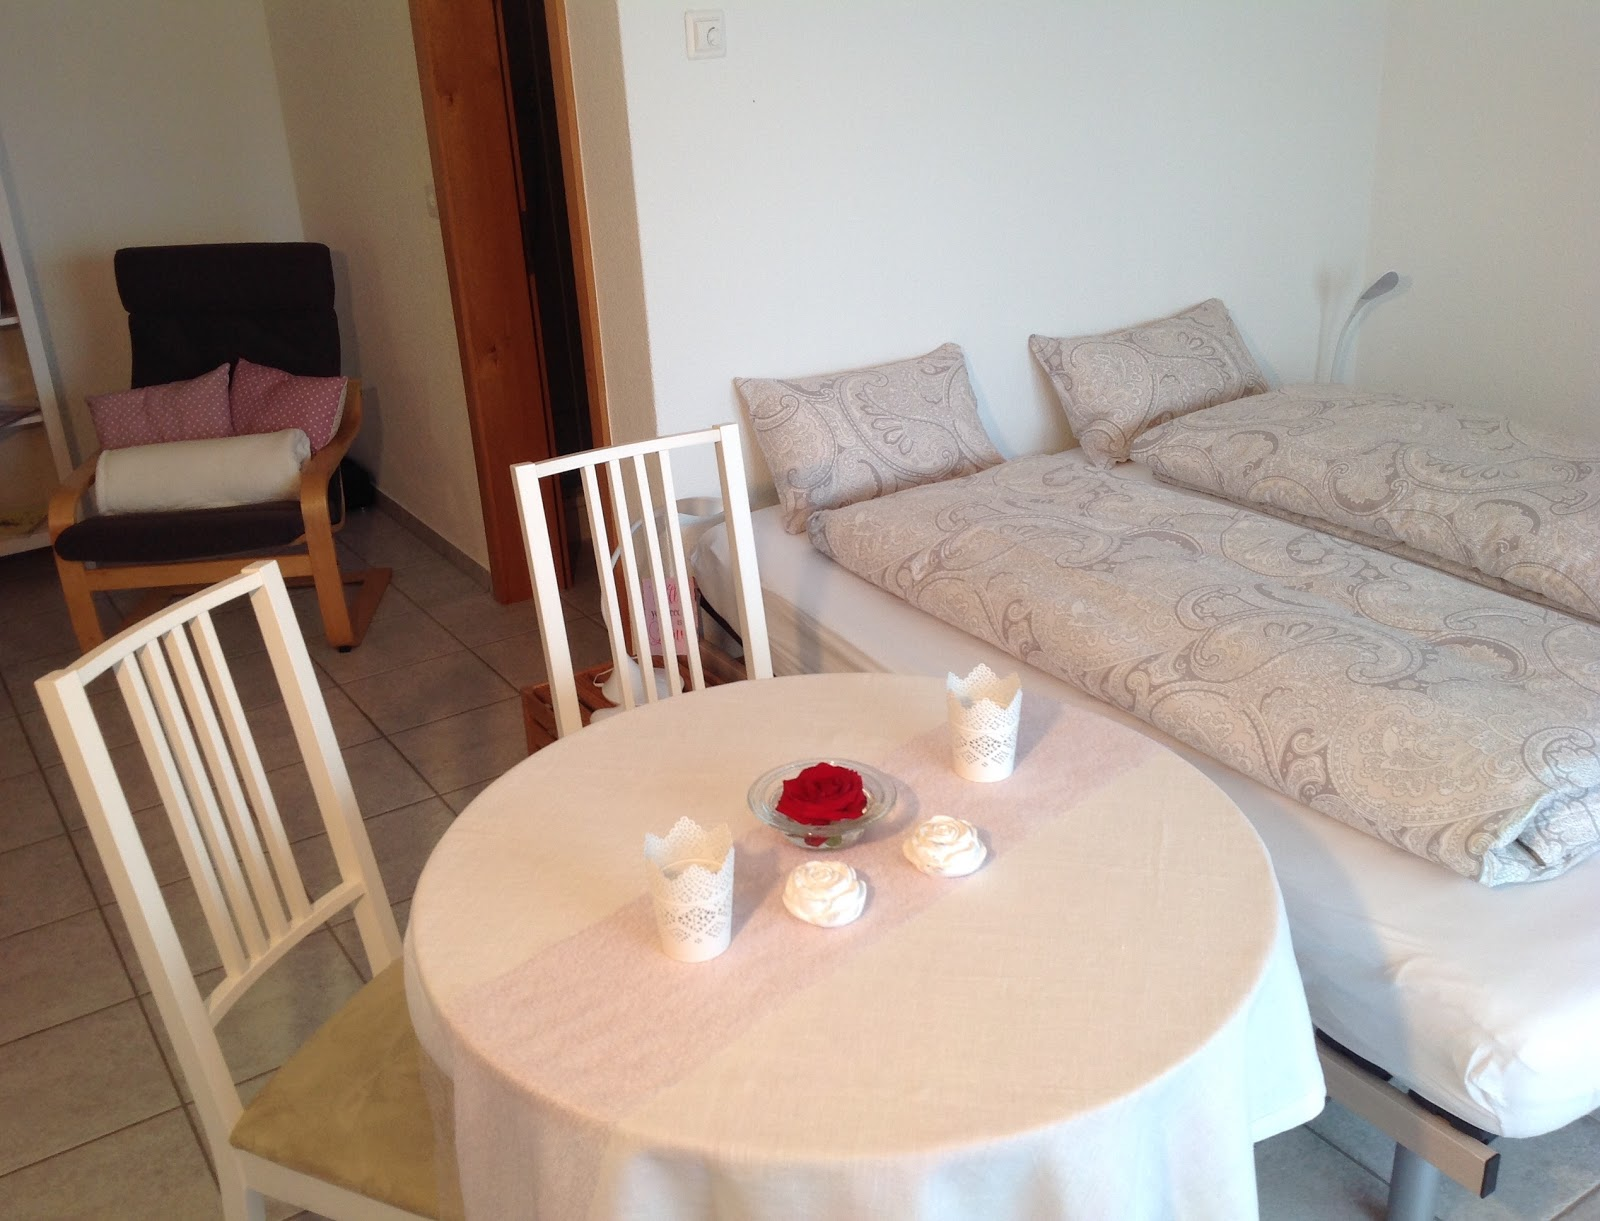 Shabbychic Bed and Breakfast